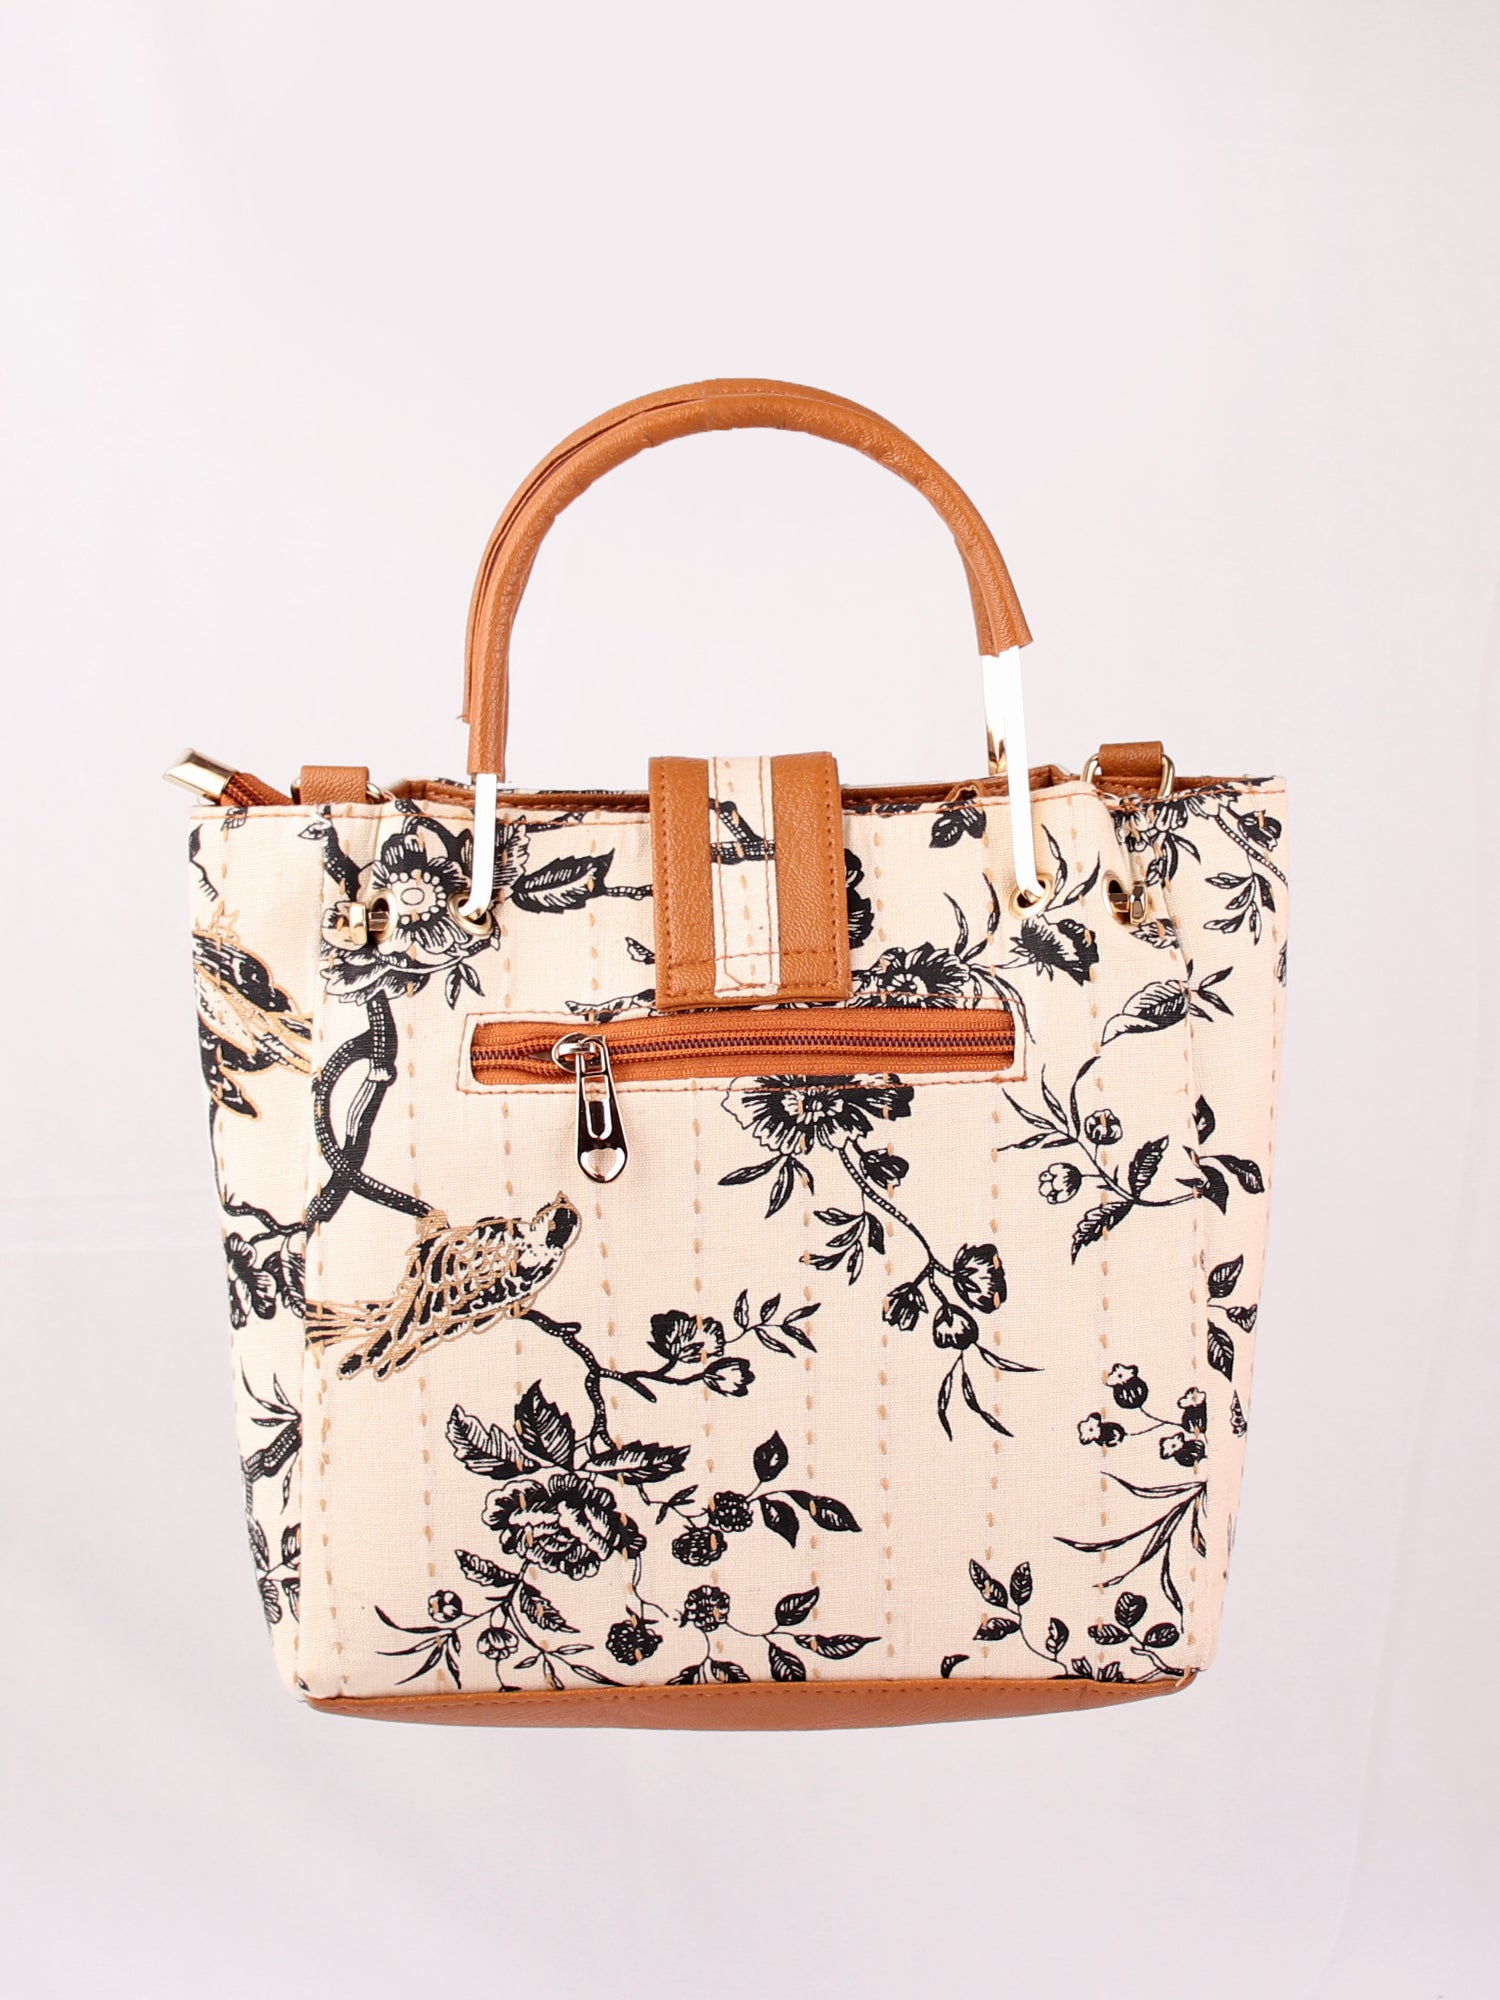 BIRDIES ON BRANCHES HANDBAG